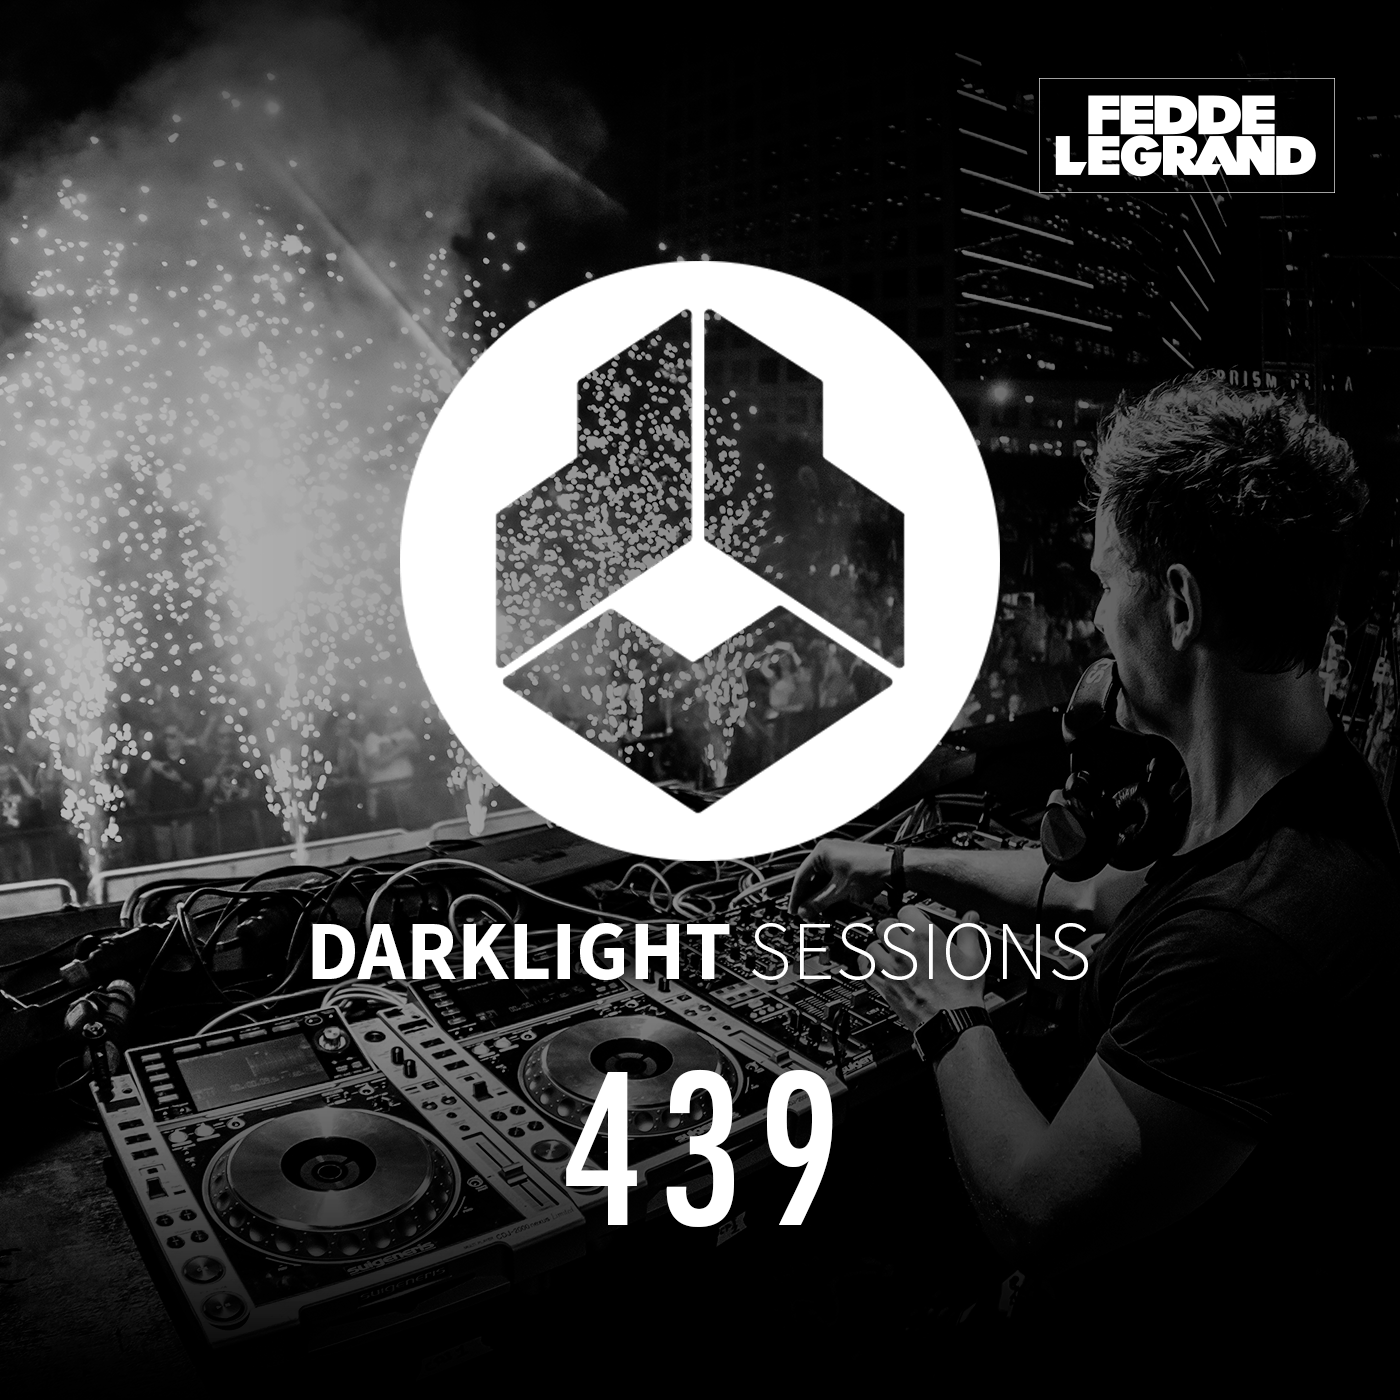 Darklight Sessions 439